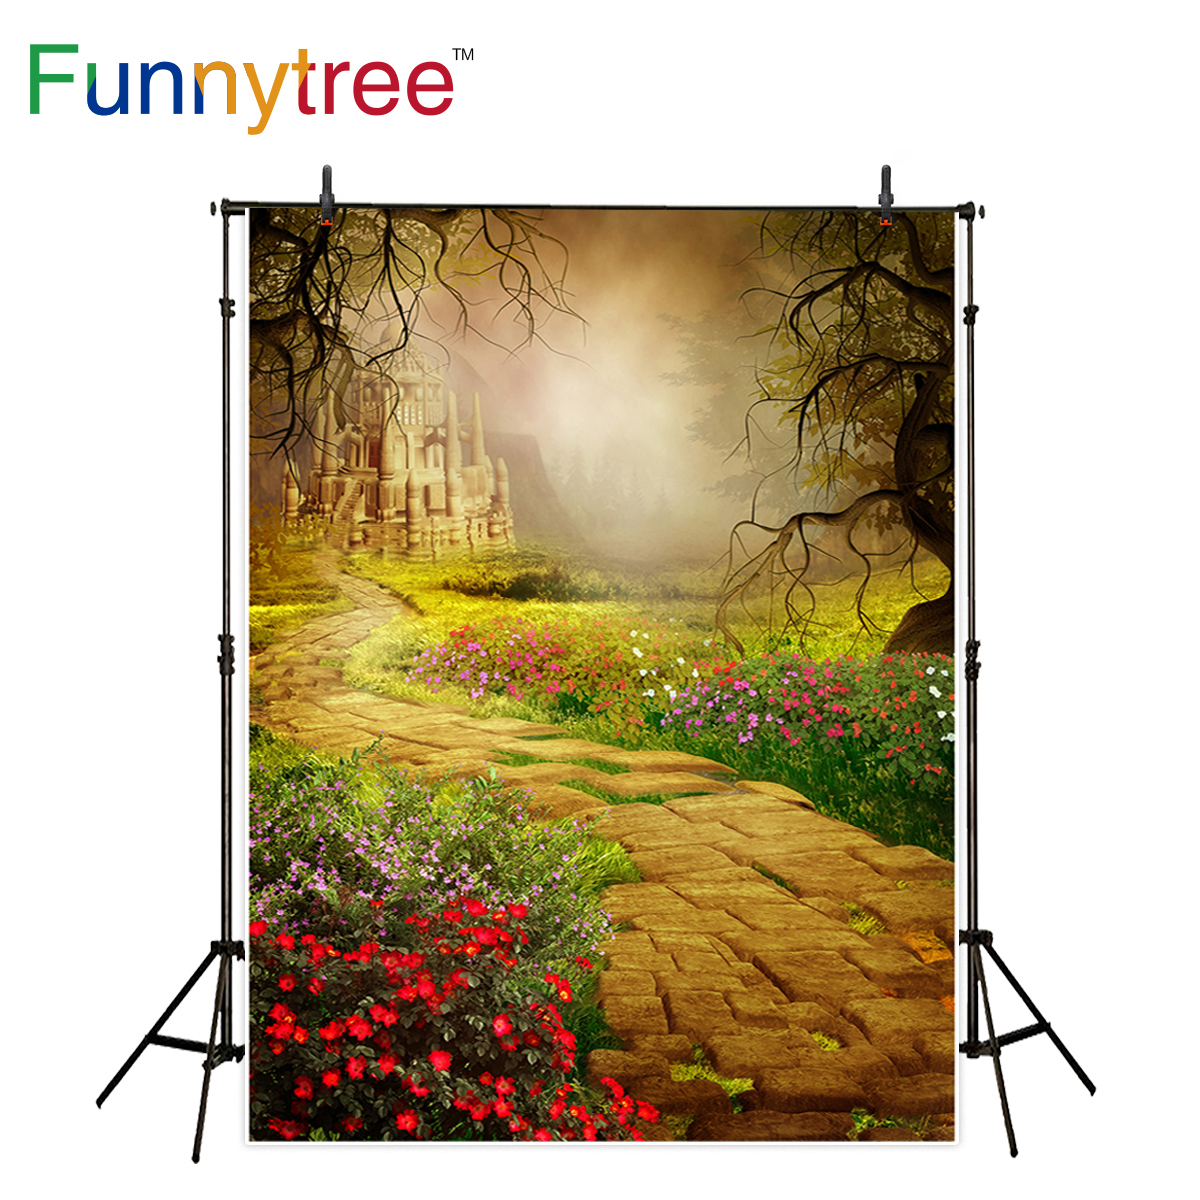 Funnytree old castle photography backdrop scenery road flower vintage background photo studio prop photocall new realflame электрический камин old castle